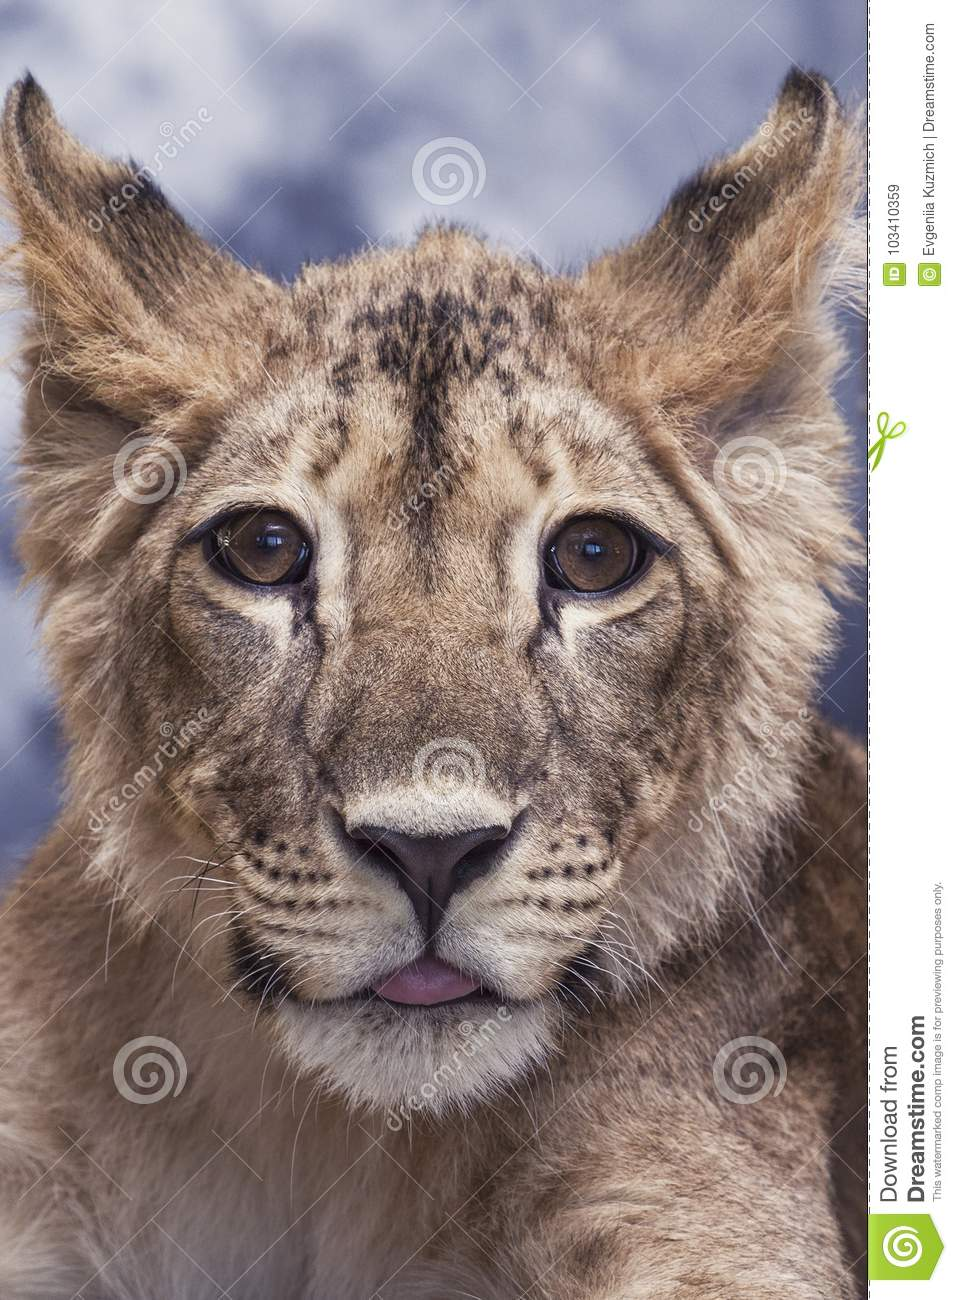 Portrait of a lioness young little cute and funny